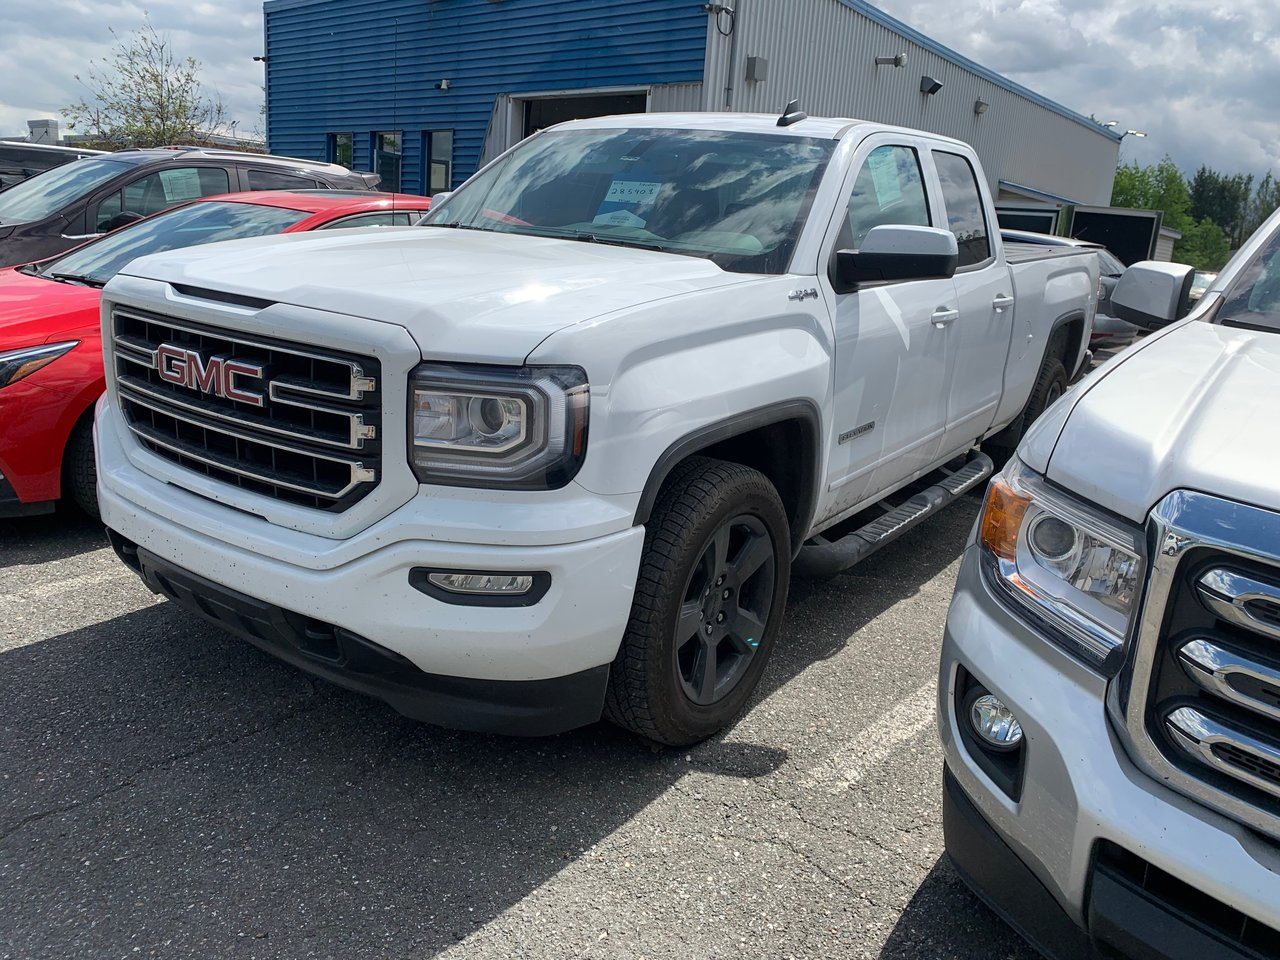 2018 Gmc  Sierra 1500 4WD DOUBLE CAB- ELEVATION- CAMERA- ROUE 20p